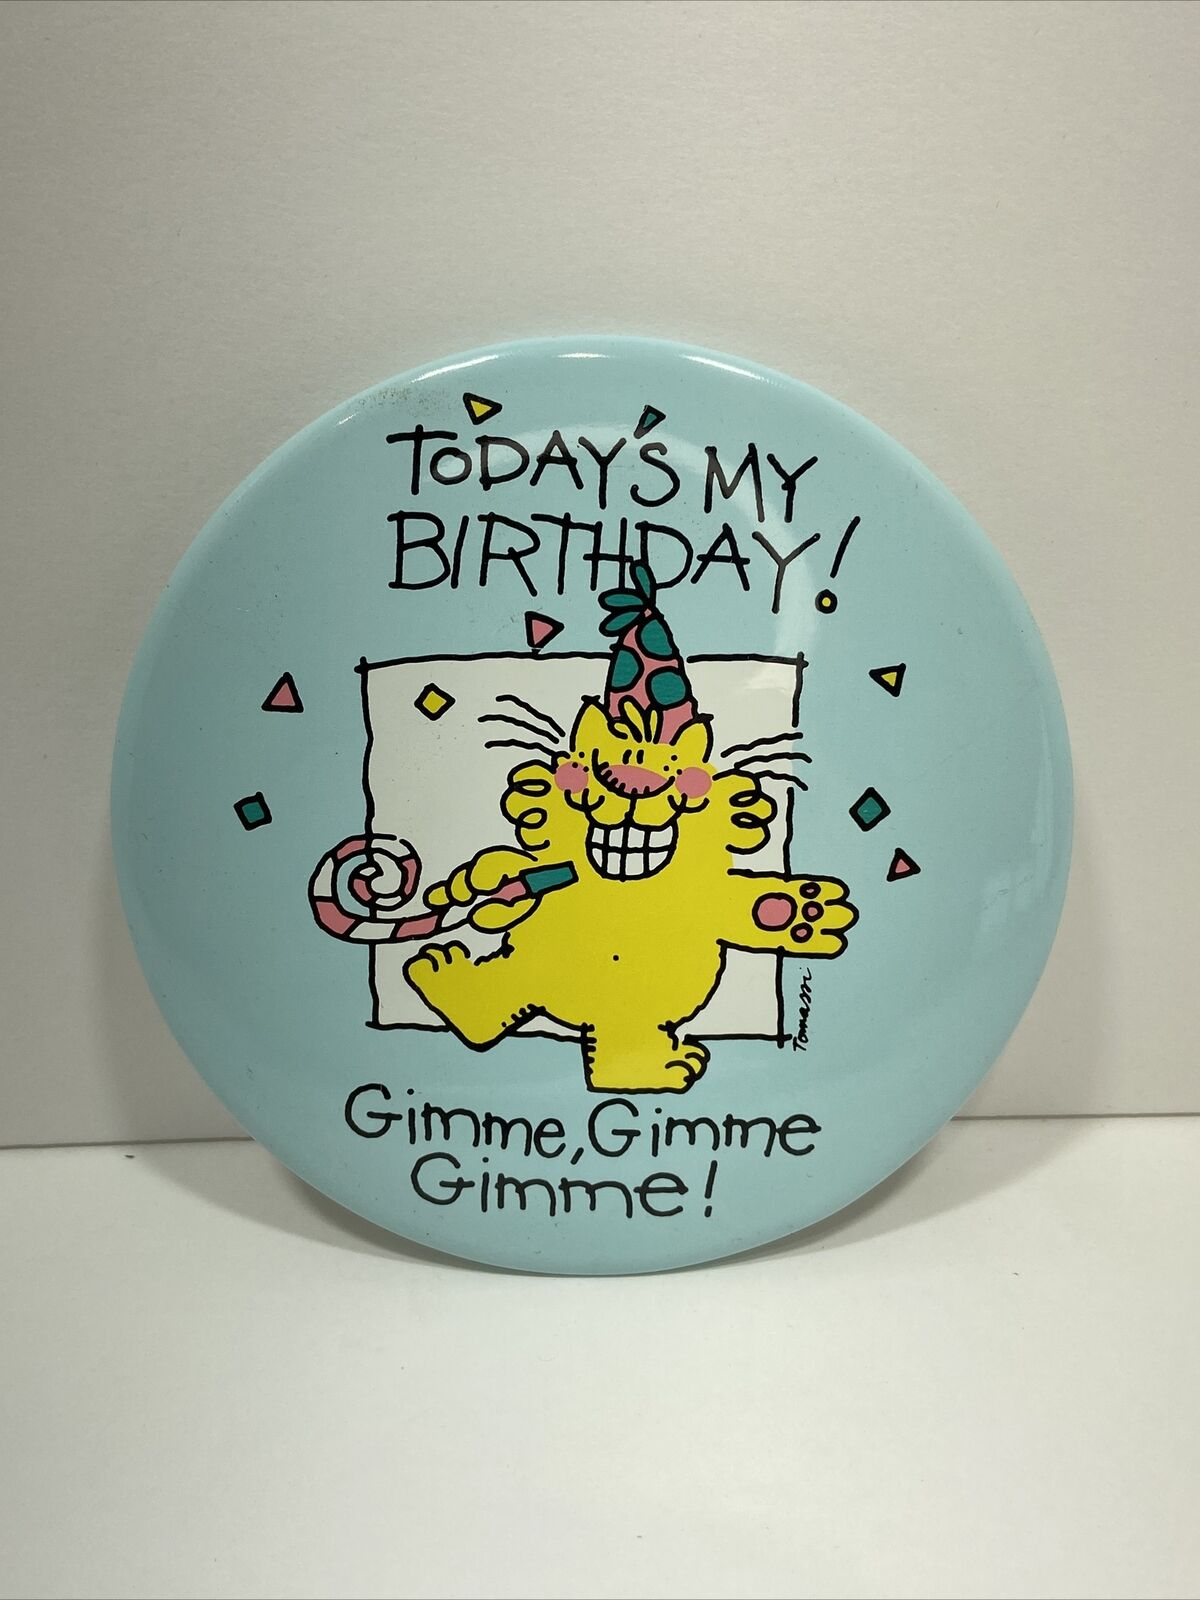 American Greetings Pin Back Button Today's My Birthday Gimme Cat Party Tomassi